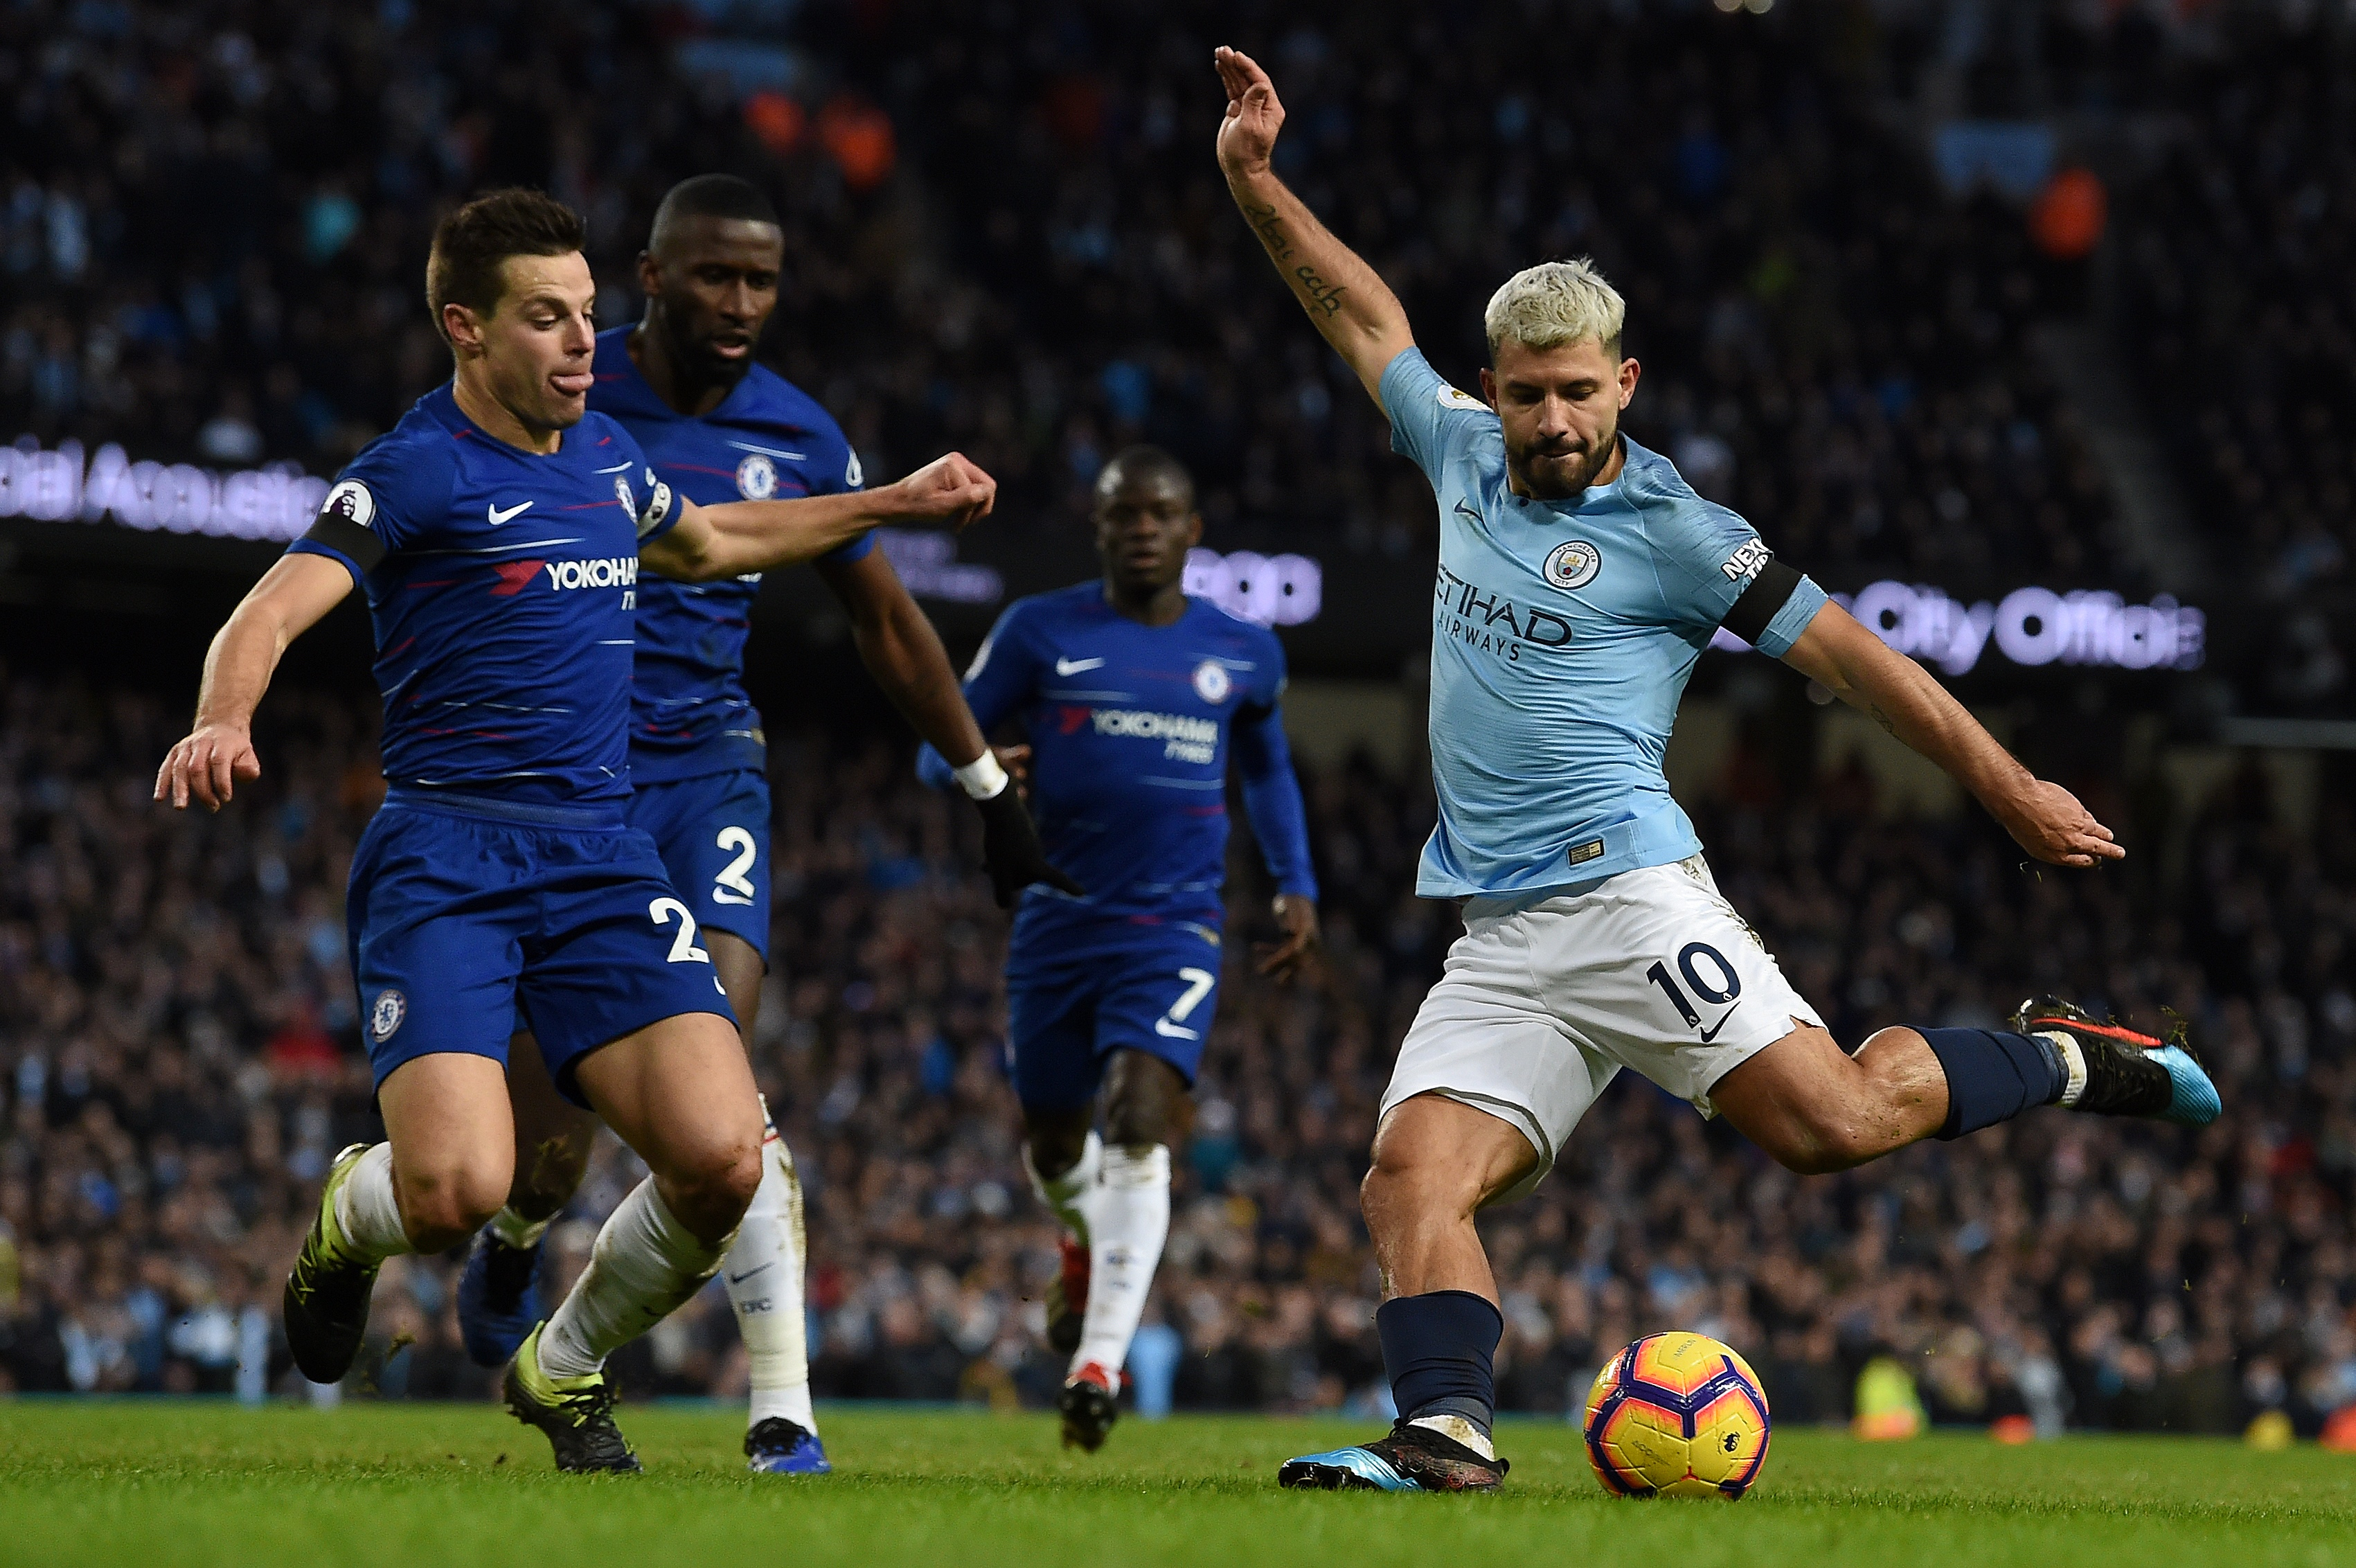 Manchester City's Argentinian striker Sergio Aguero (R) shoots but fails to score during the English Premier League football match between Manchester City and Chelsea at the Etihad Stadium in Manchester, northwest England, on February 10, 2019.